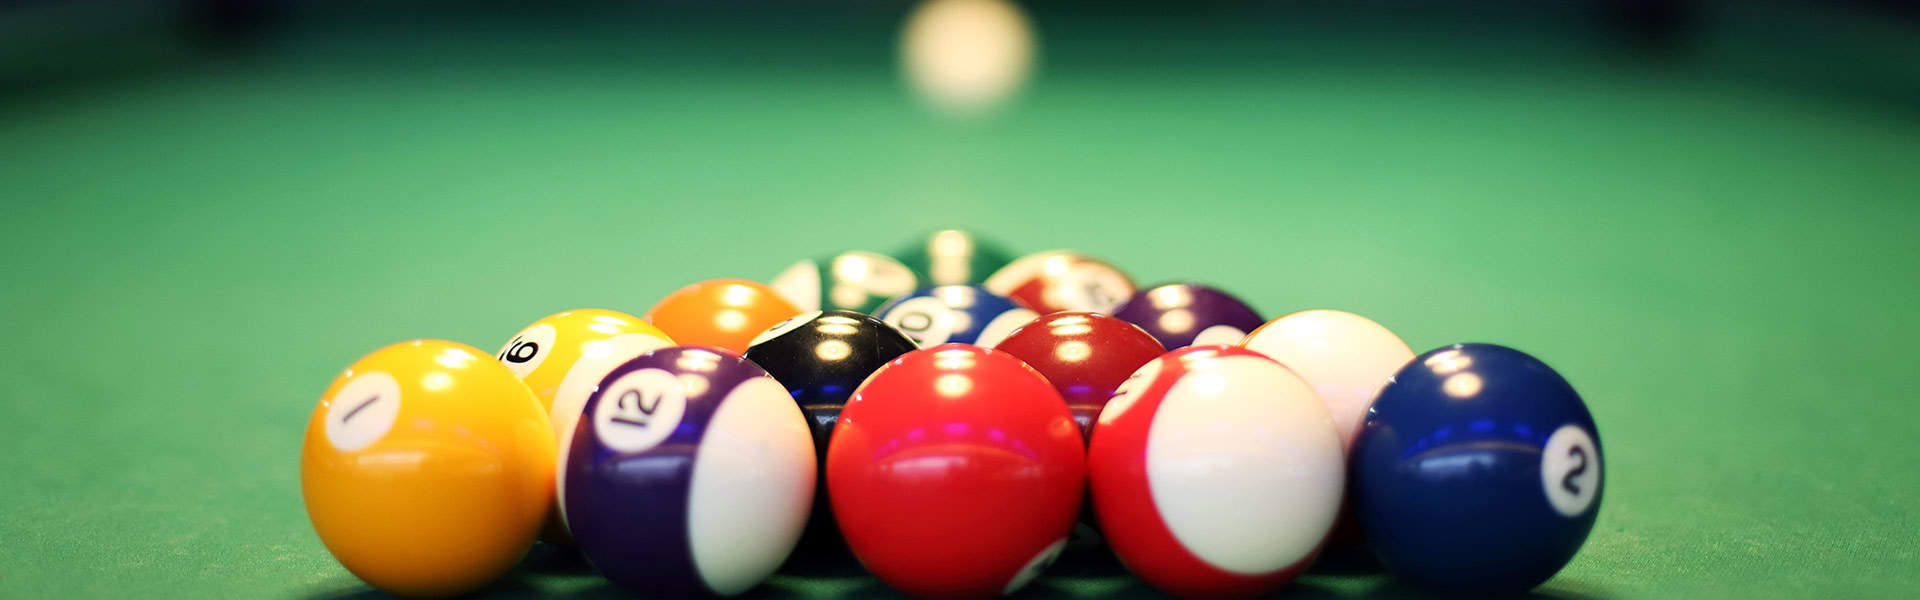 Pool Table Restoration And Moving In Northern Arizona - Pool table movers az